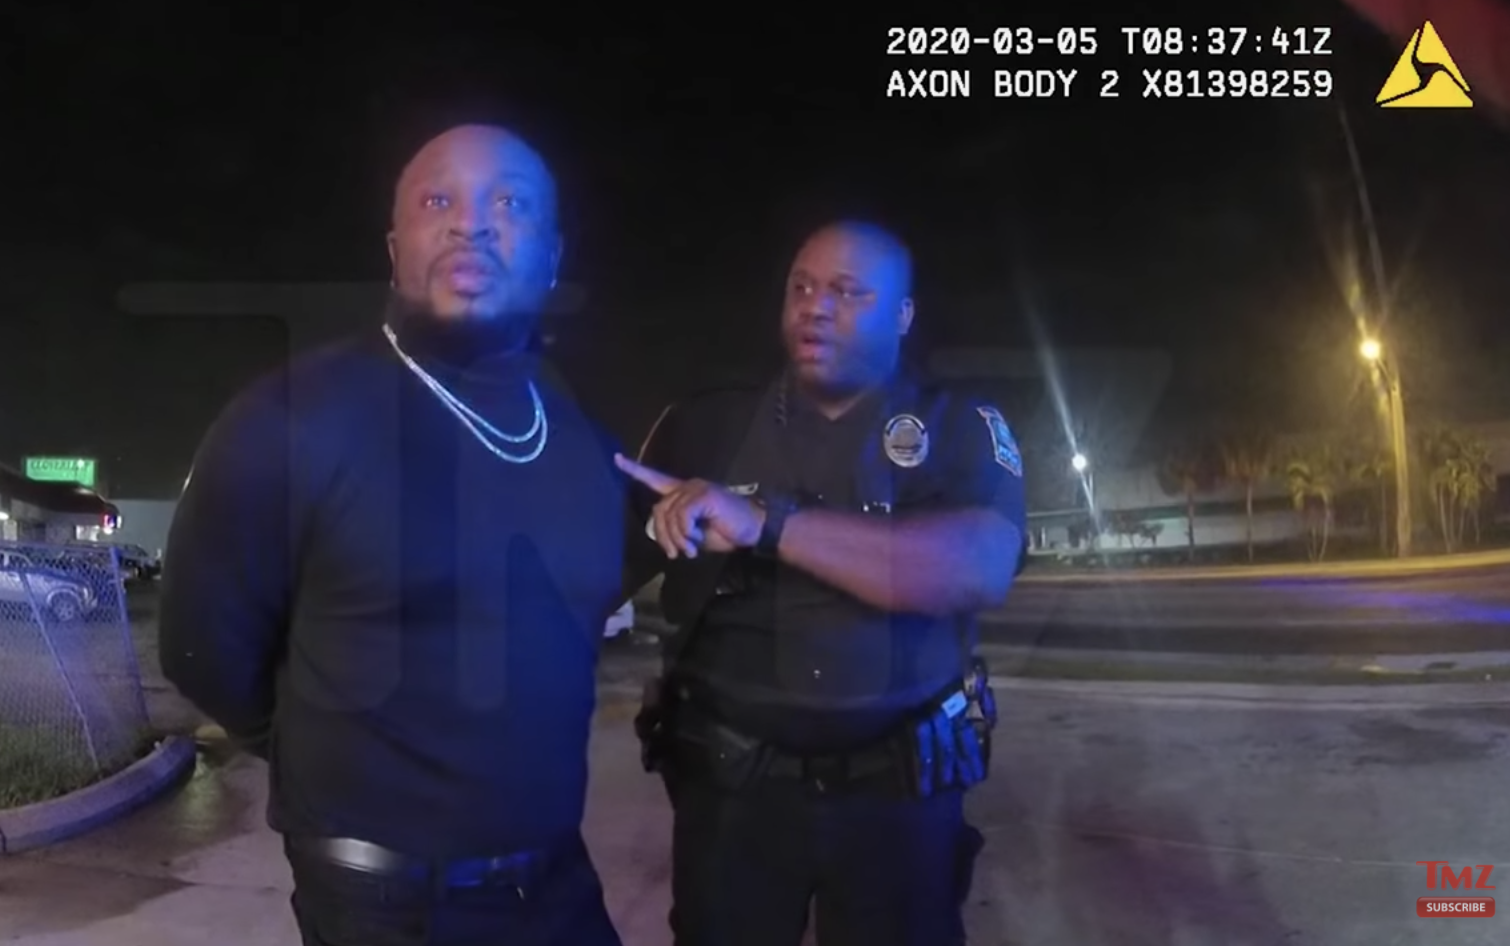 Pleasure P Arrest Video Shows He Pulled Do-You-Know-Who-I-Am Card